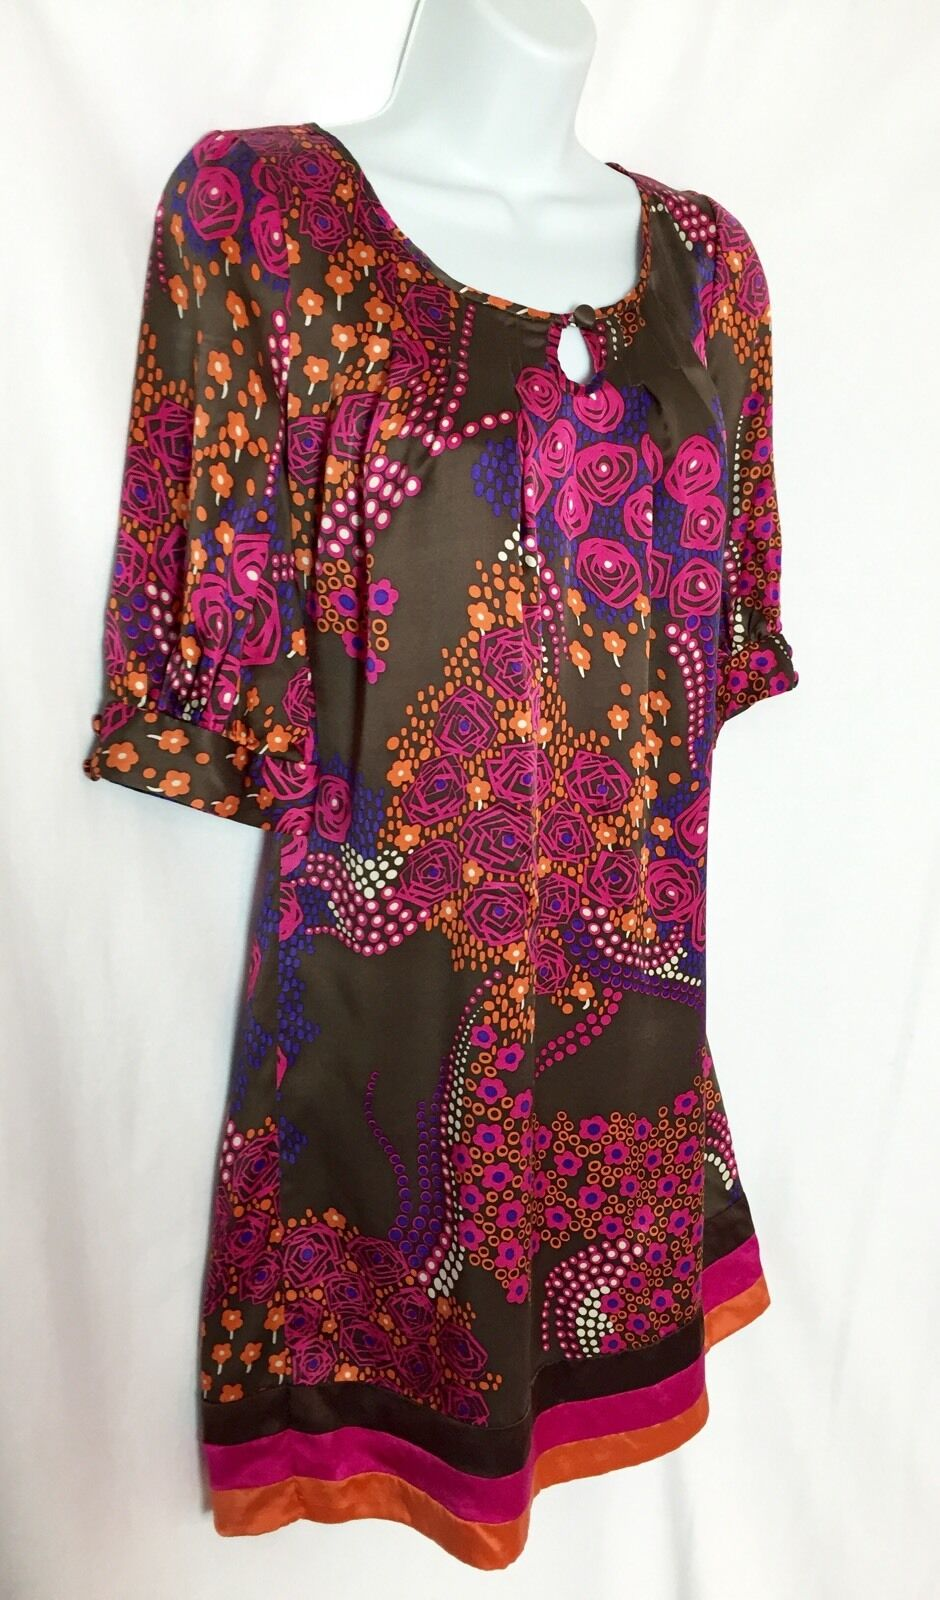 Calypso St Barth Christine Celle SILK Brown Pink Floral Print Dress Small